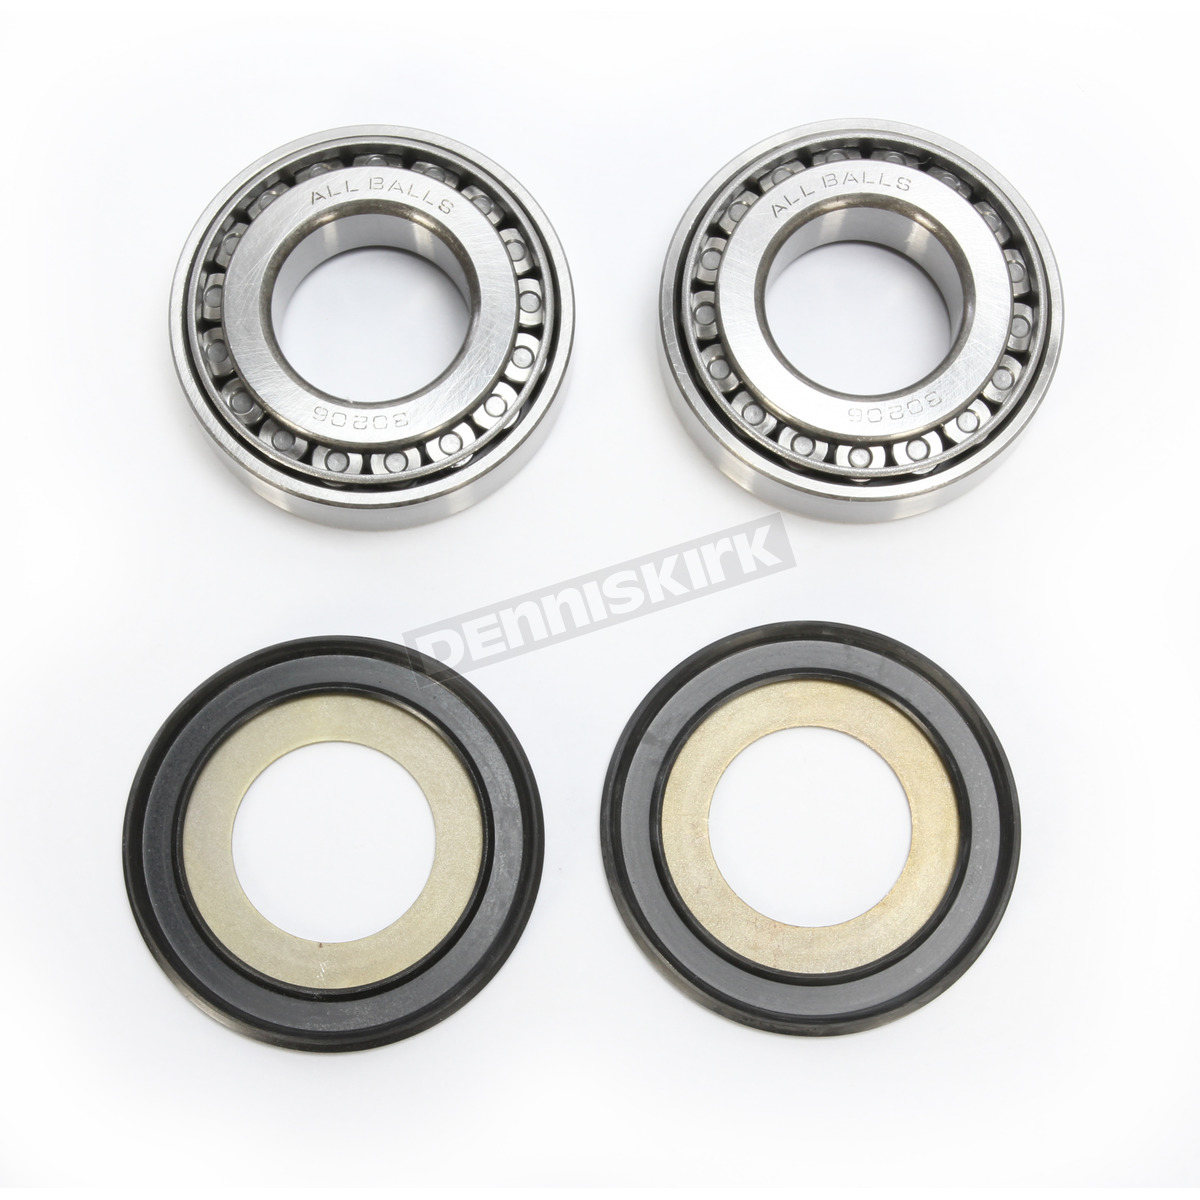 Steering Stem Replacement Bearing Kit - 0410-0294